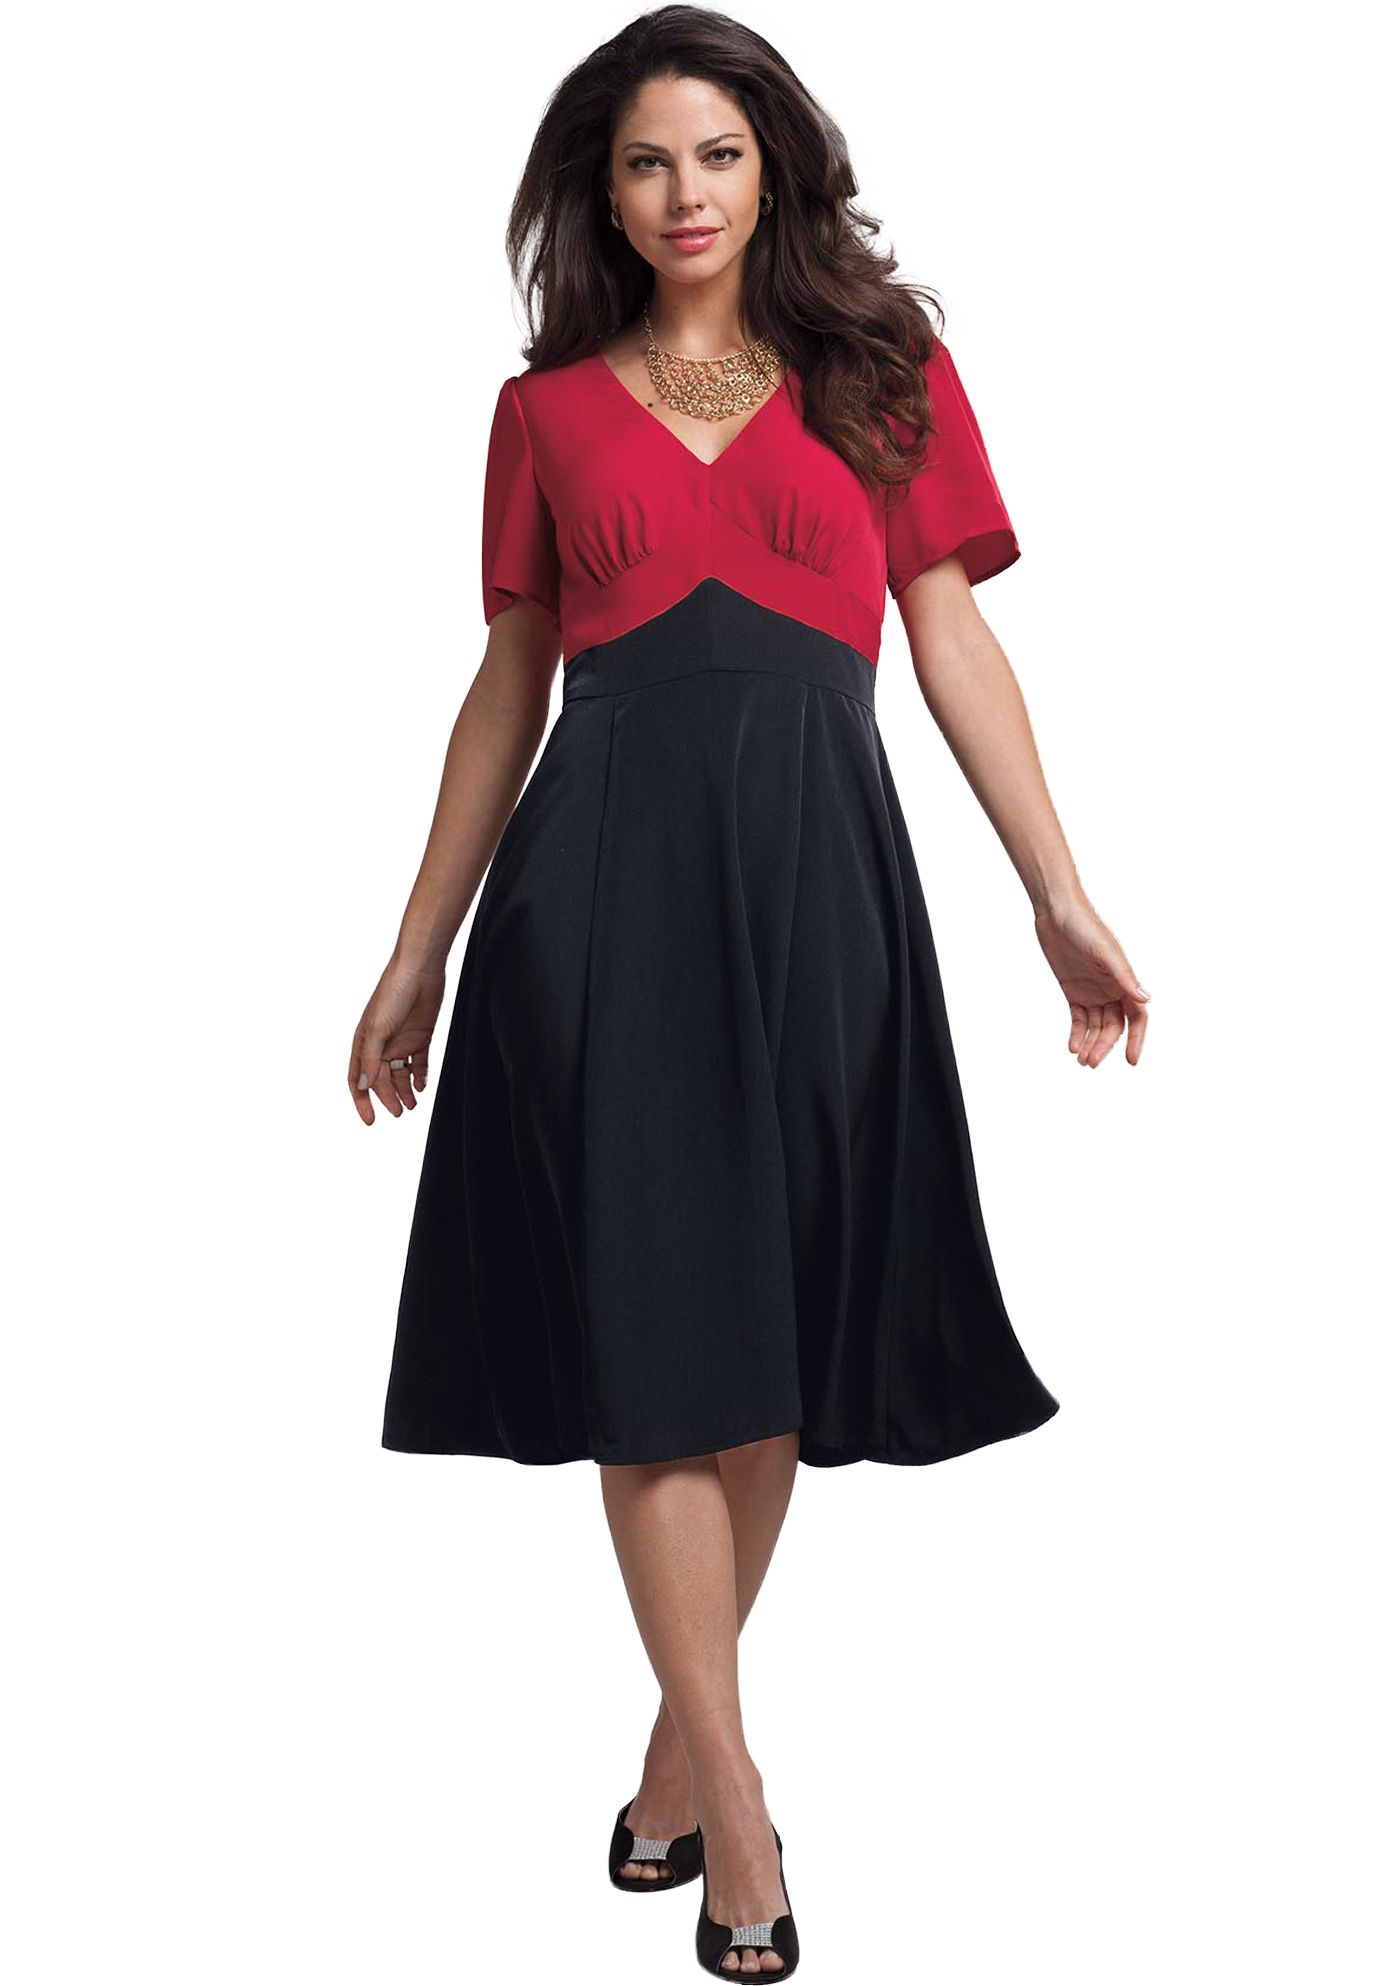 Colorblock Empire Waist Dress Plus Size Top 100 Best Sellers